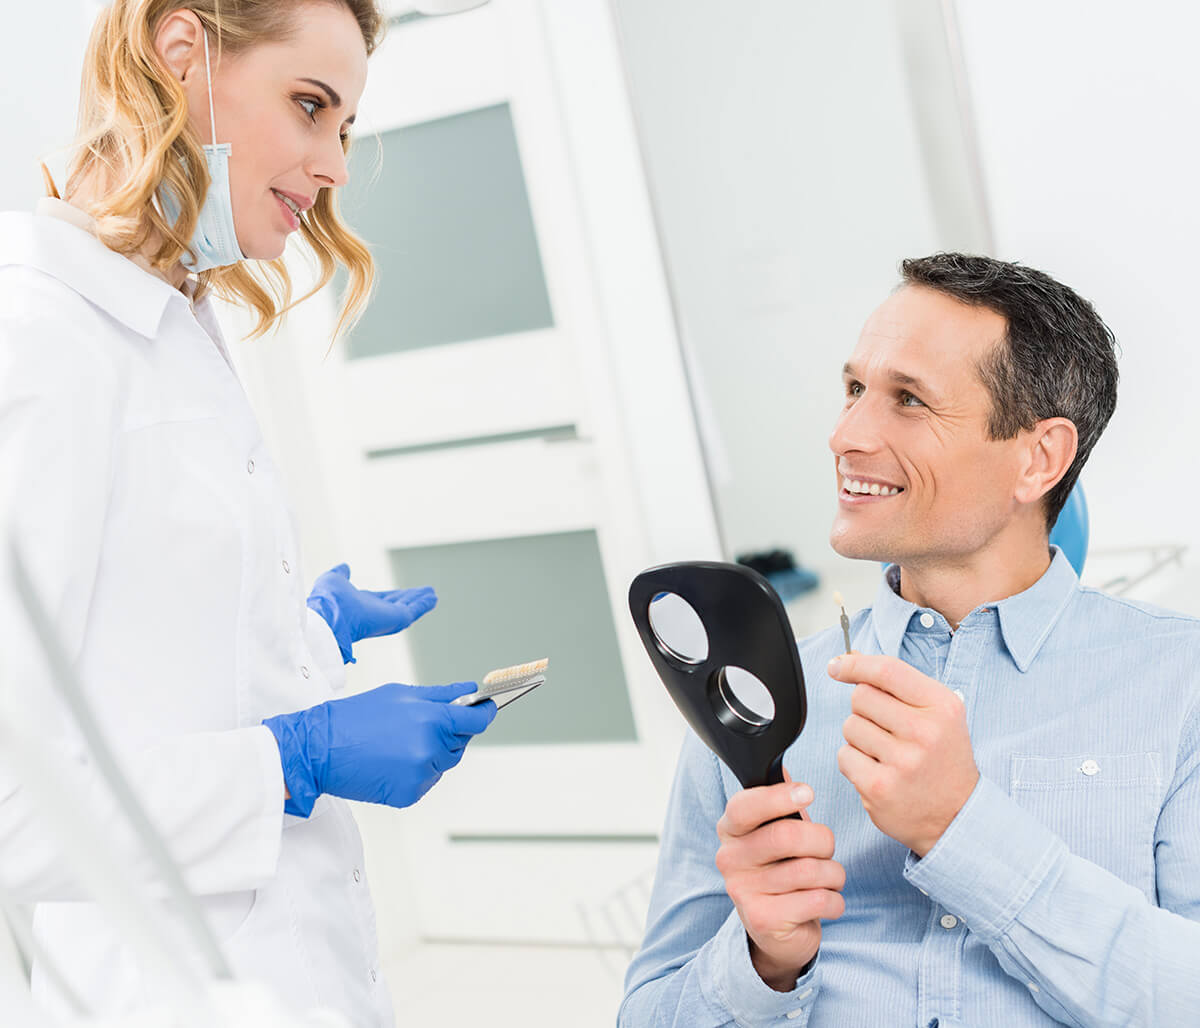 Dentist in Philadelphia, PA Area Offers Dental Implant Placement and Restoration